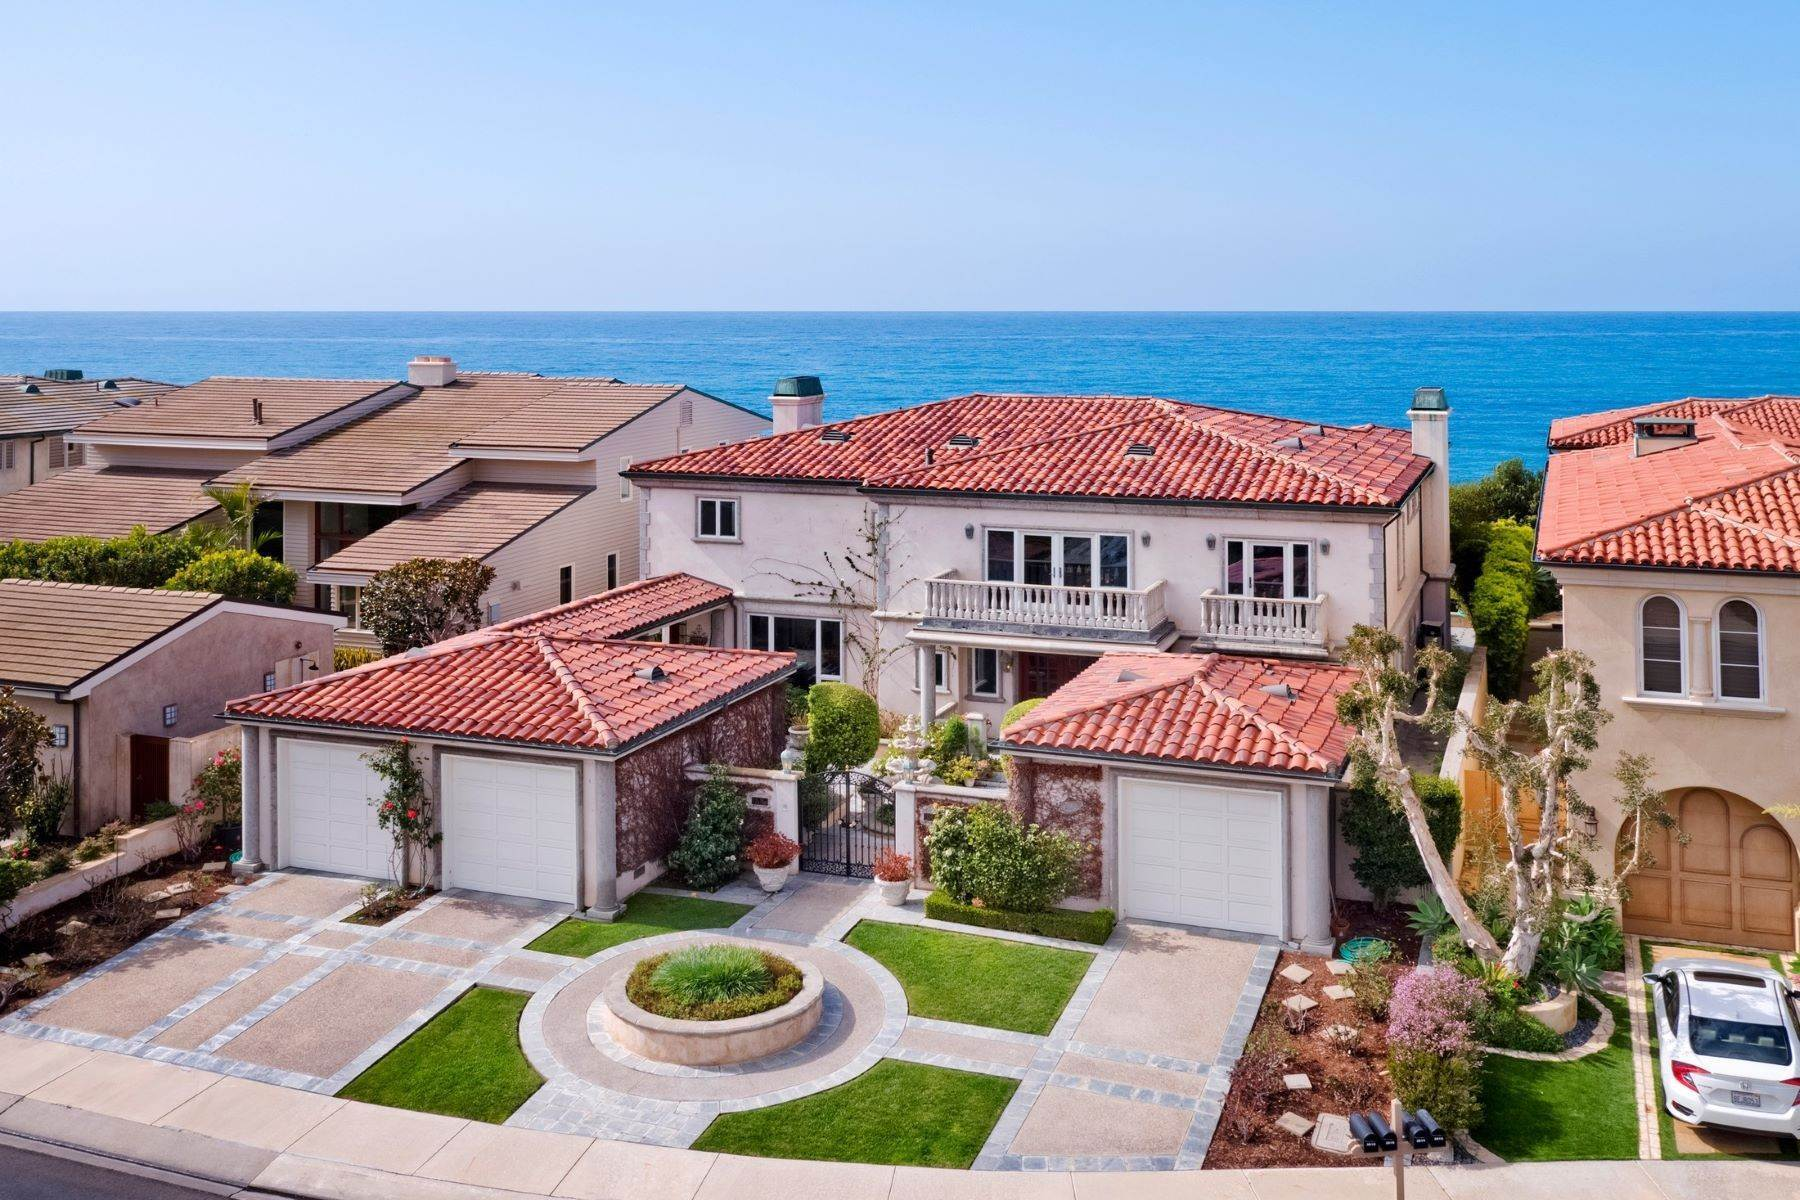 Single Family Homes for Sale at Rare Oceanfront Villa 3816 Vista Blanca San Clemente, California 92672 United States